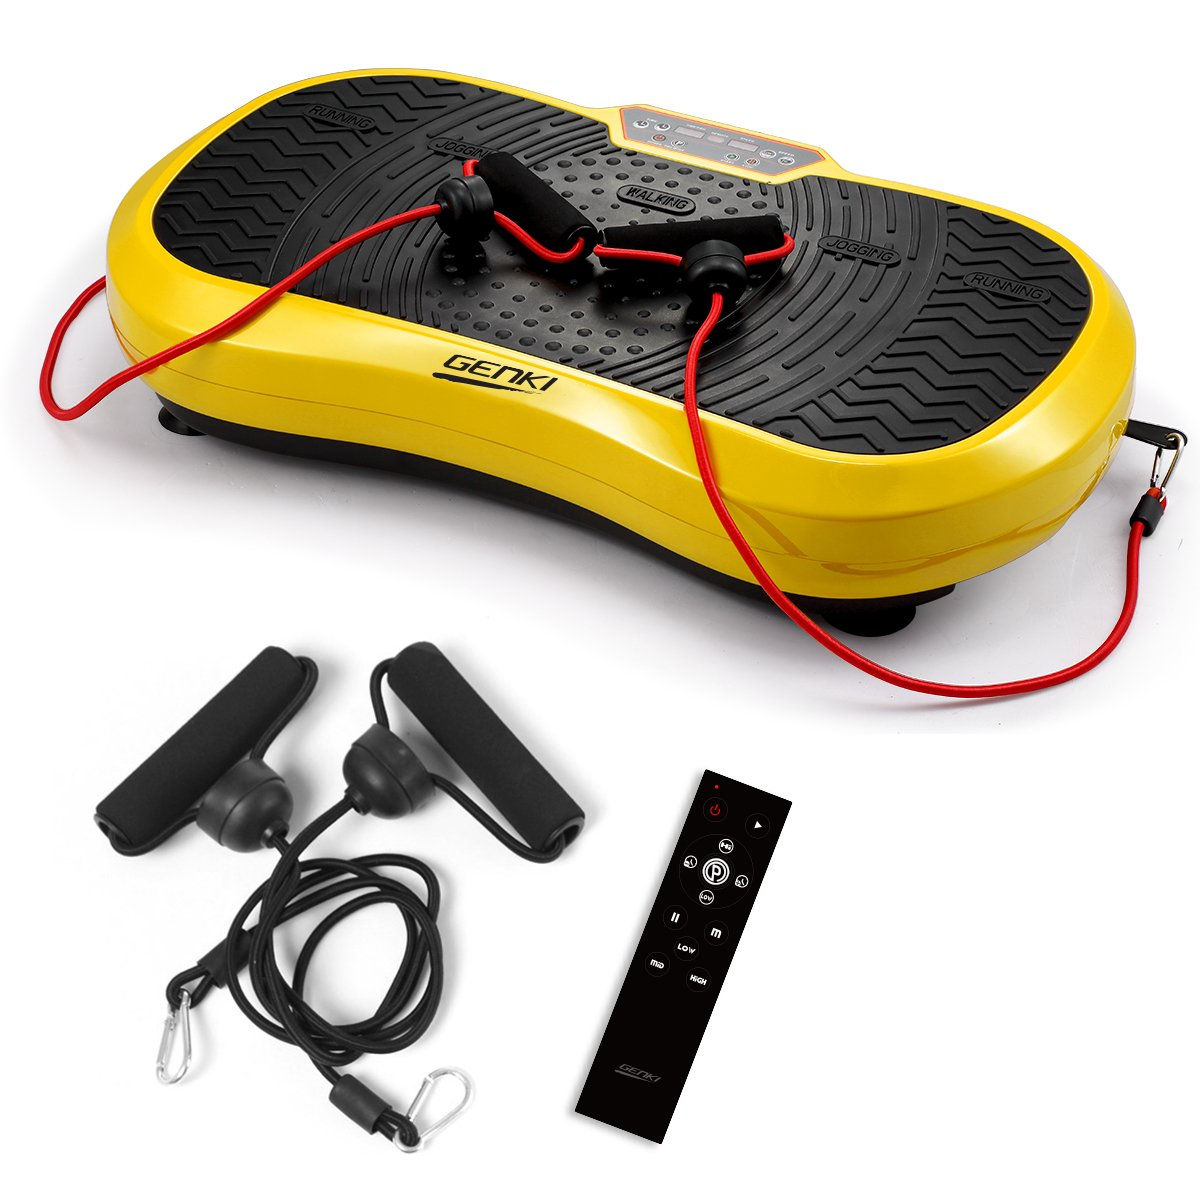 GENKI YD-1008YE Fitness Slim Full Body Vibration Platform Fitness Machine with 2 Bands & Remote, Max User Weight 330Lbs